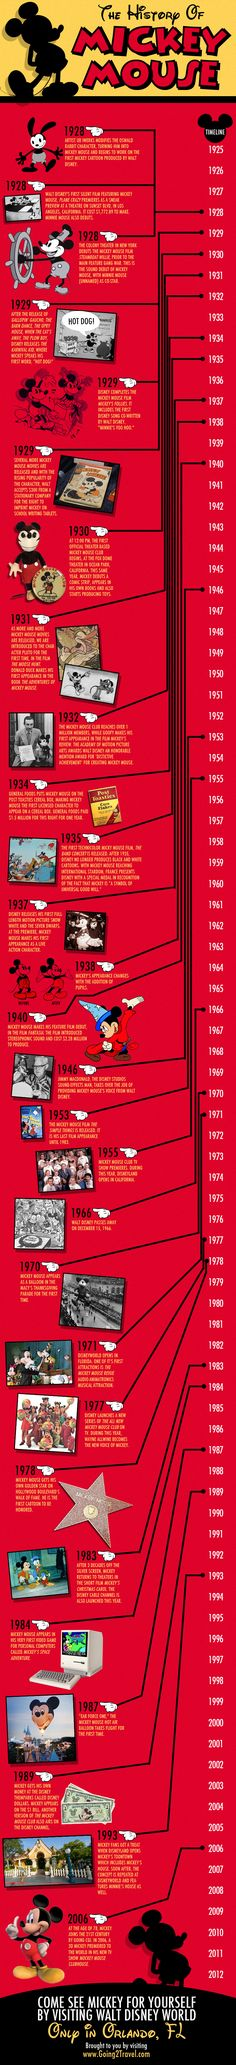 The history of Mickey Mouse [infographic] - Holy Kaw!